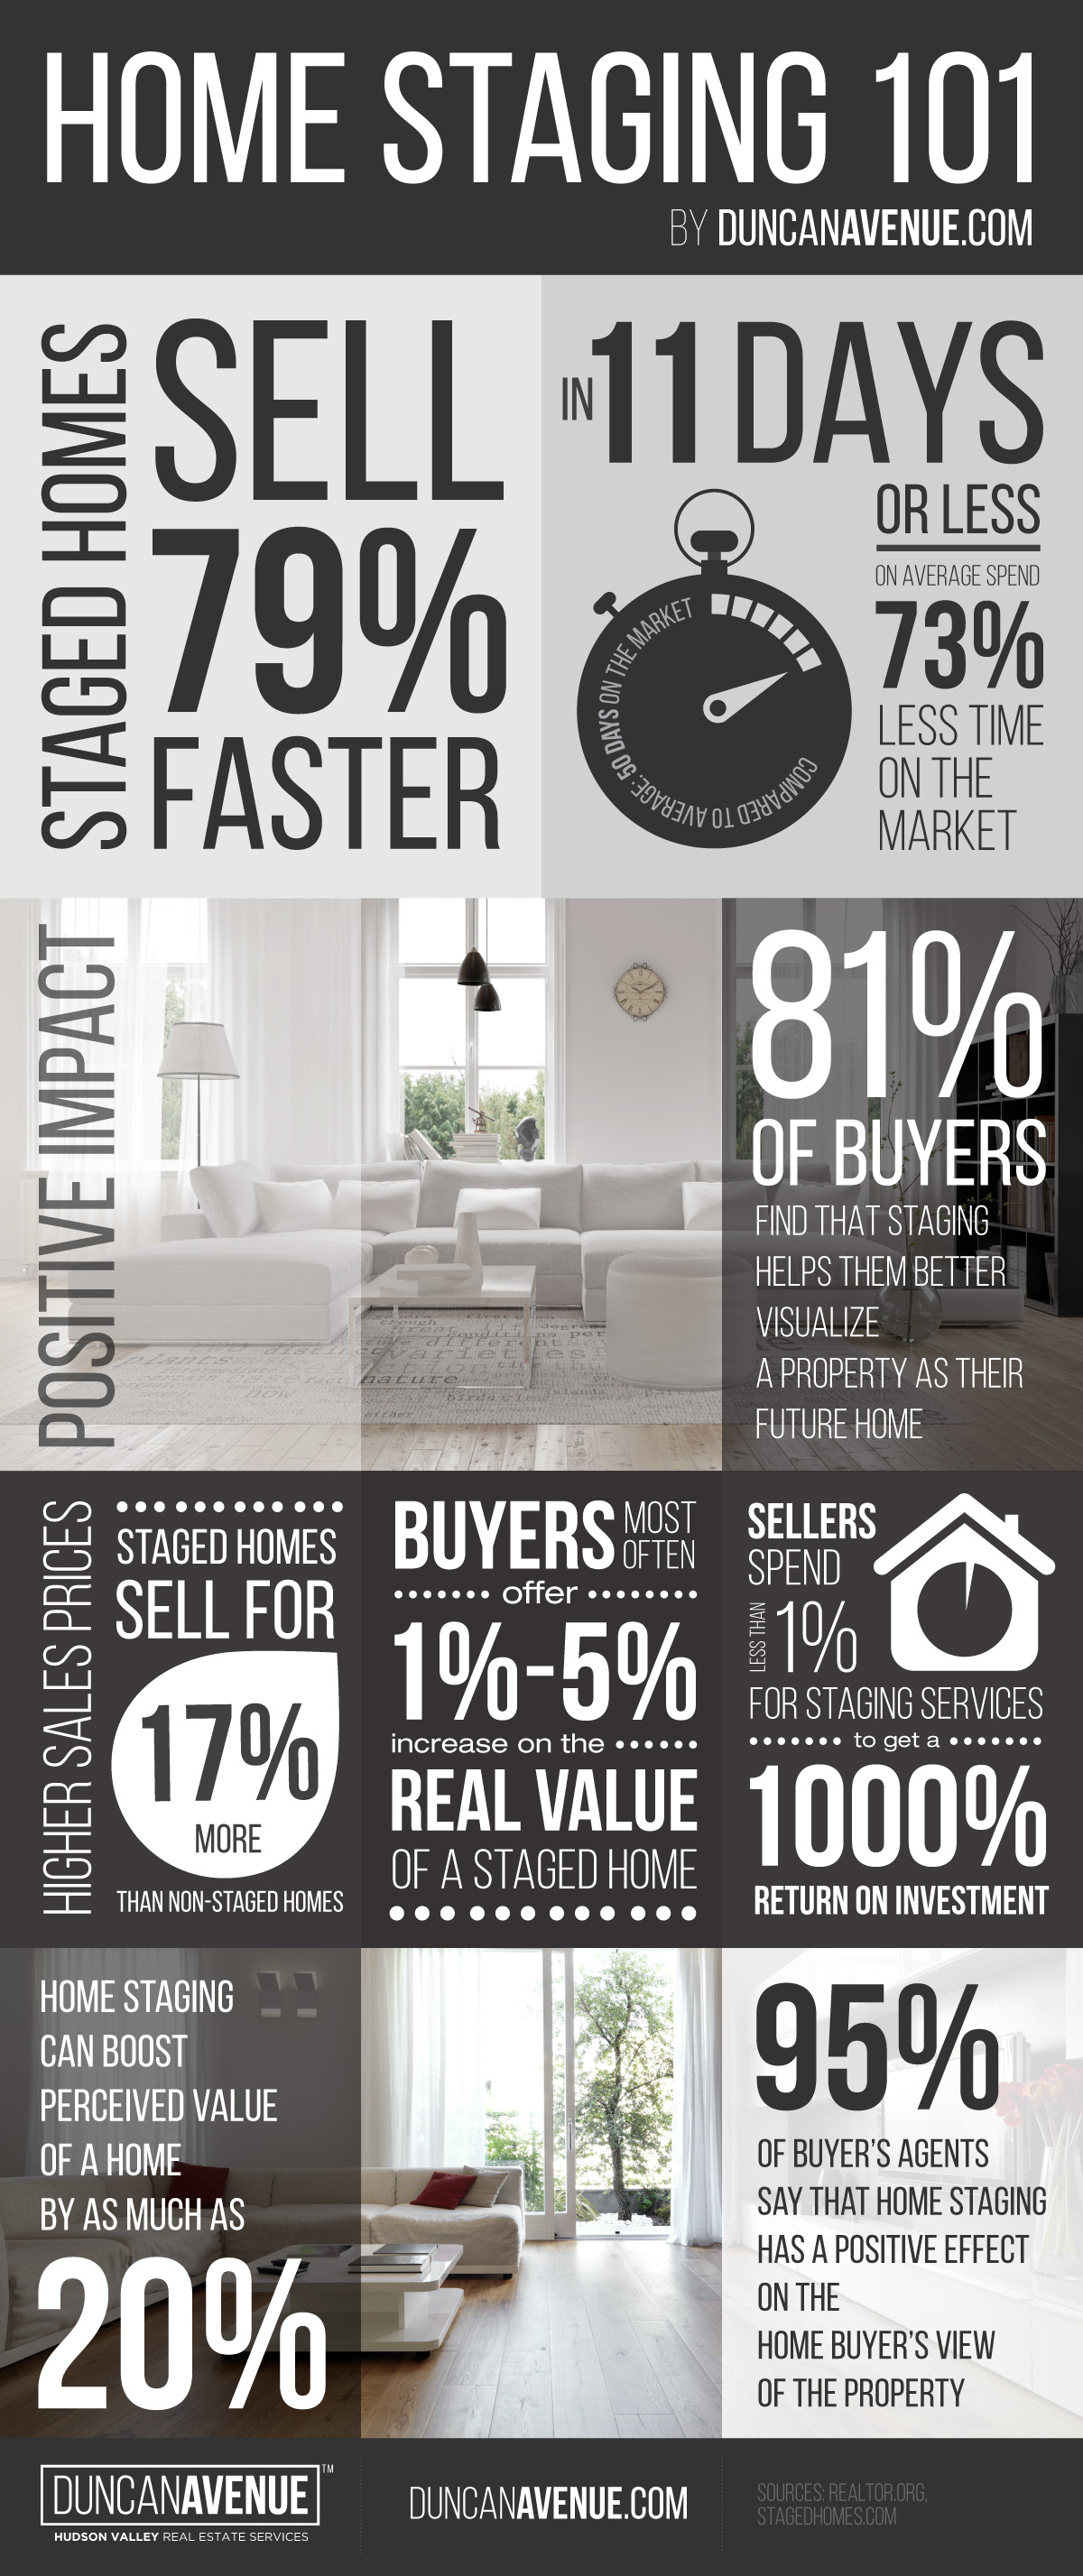 Home Staging Services in Hudson Valley, New York.